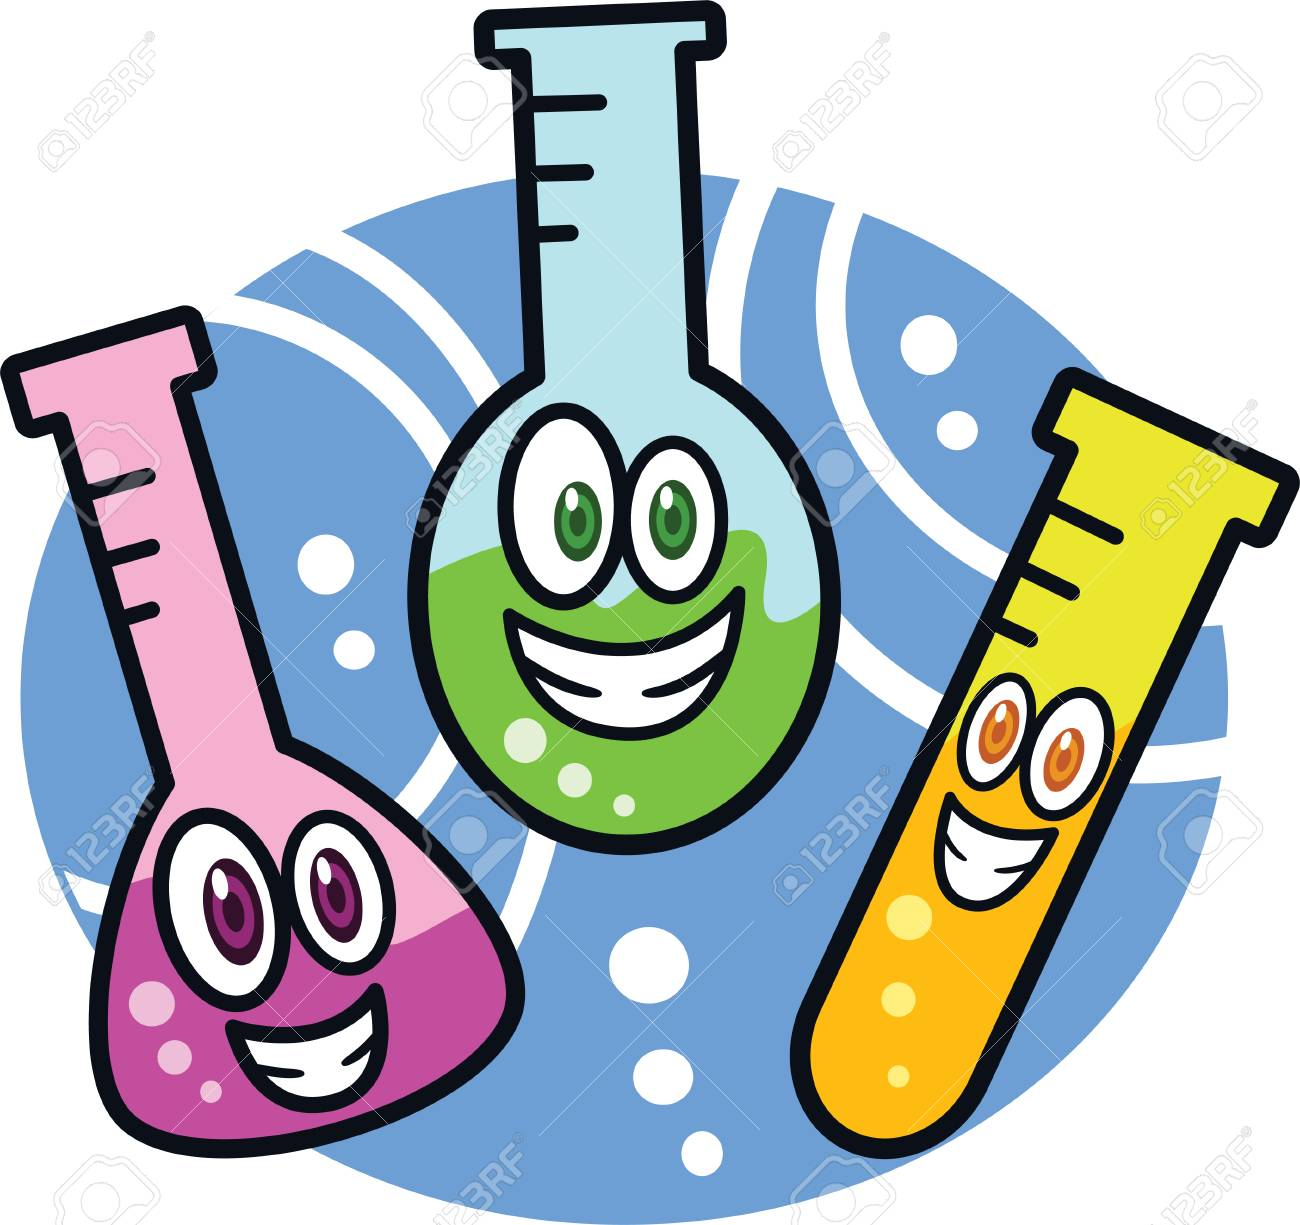 Test Tube Cartoon Stock Vector 68370687